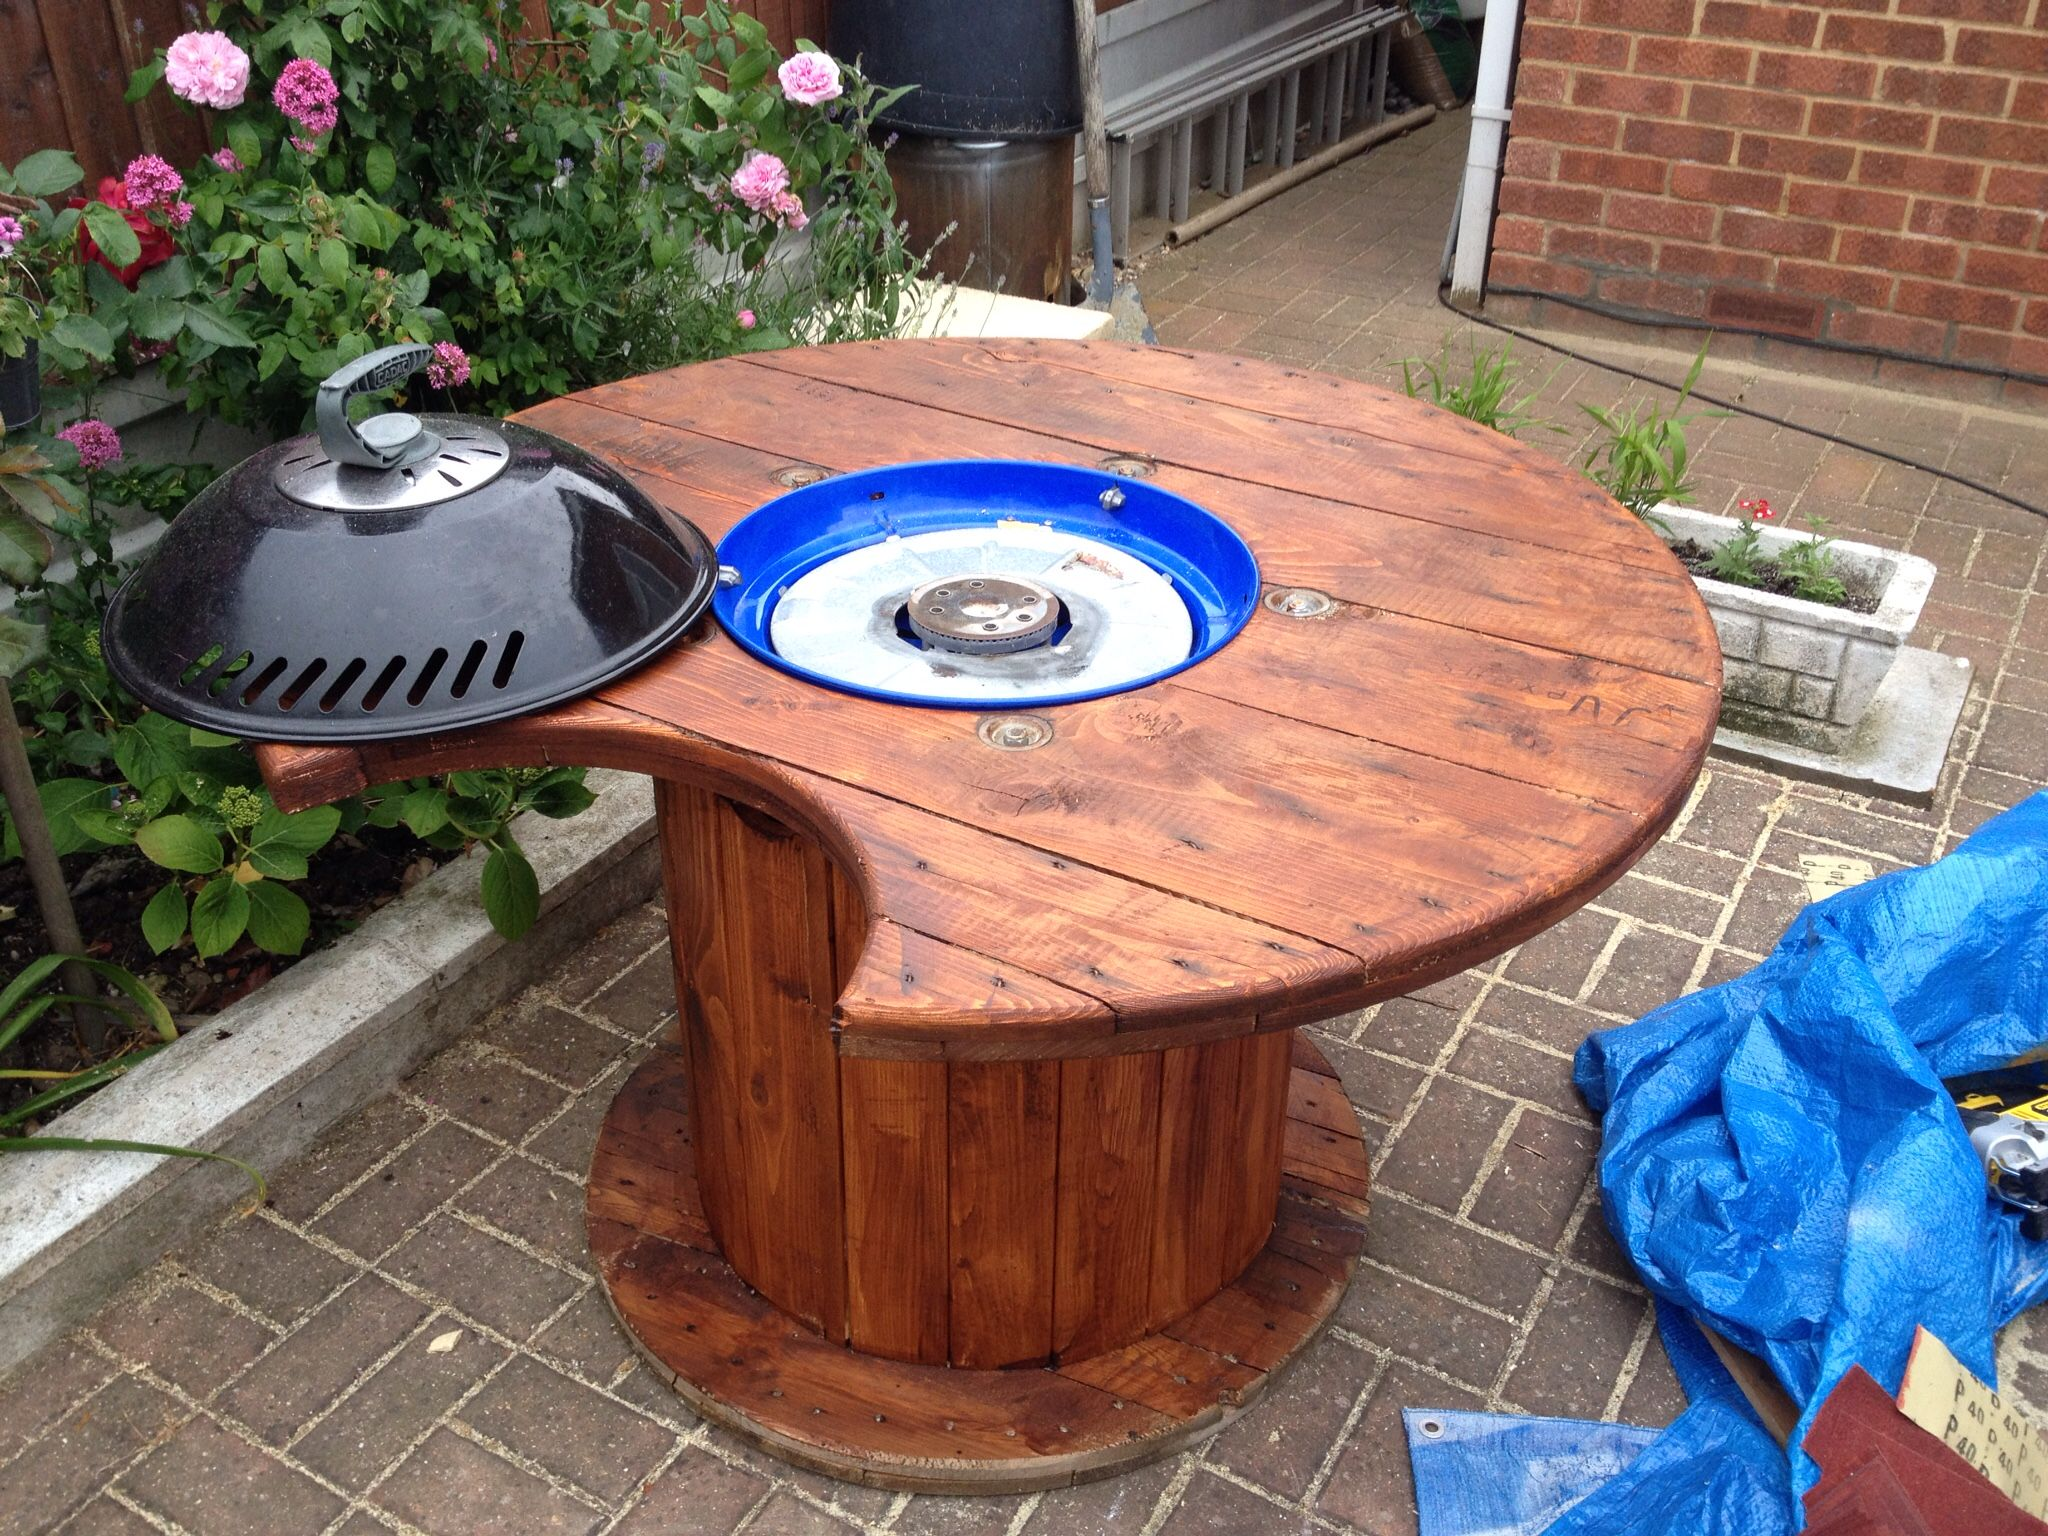 Old Cable Drum Turned Into Bbq With Gas Bottle Inside And